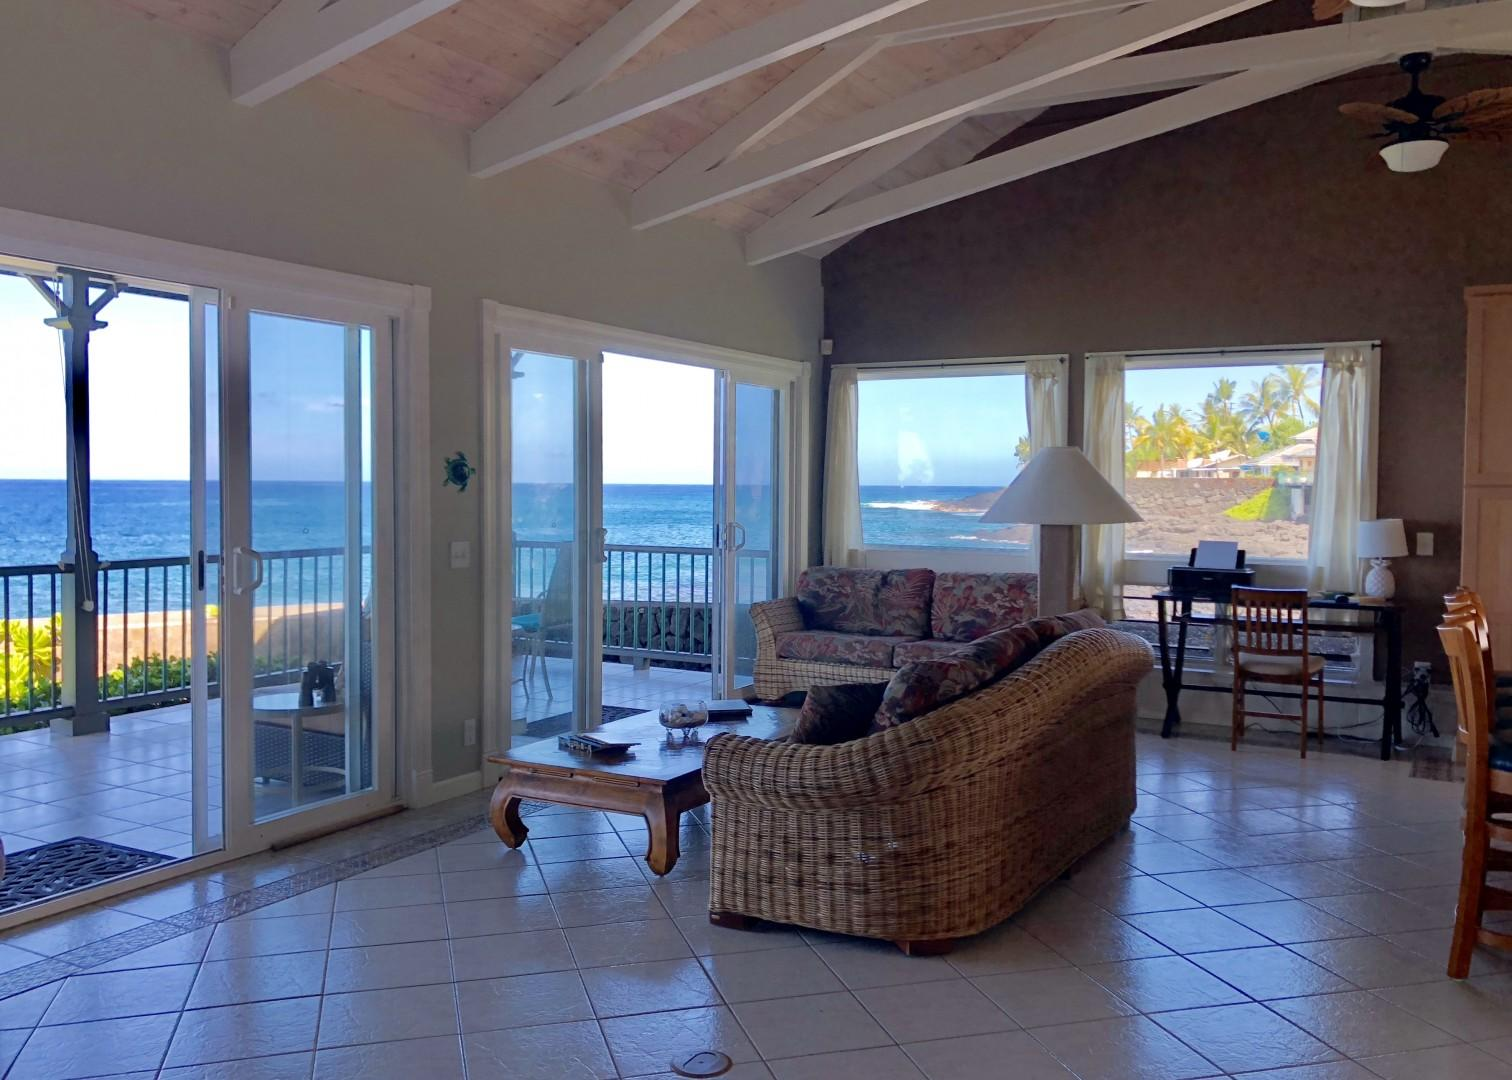 Comfortable sofas to take in the Ocean views!